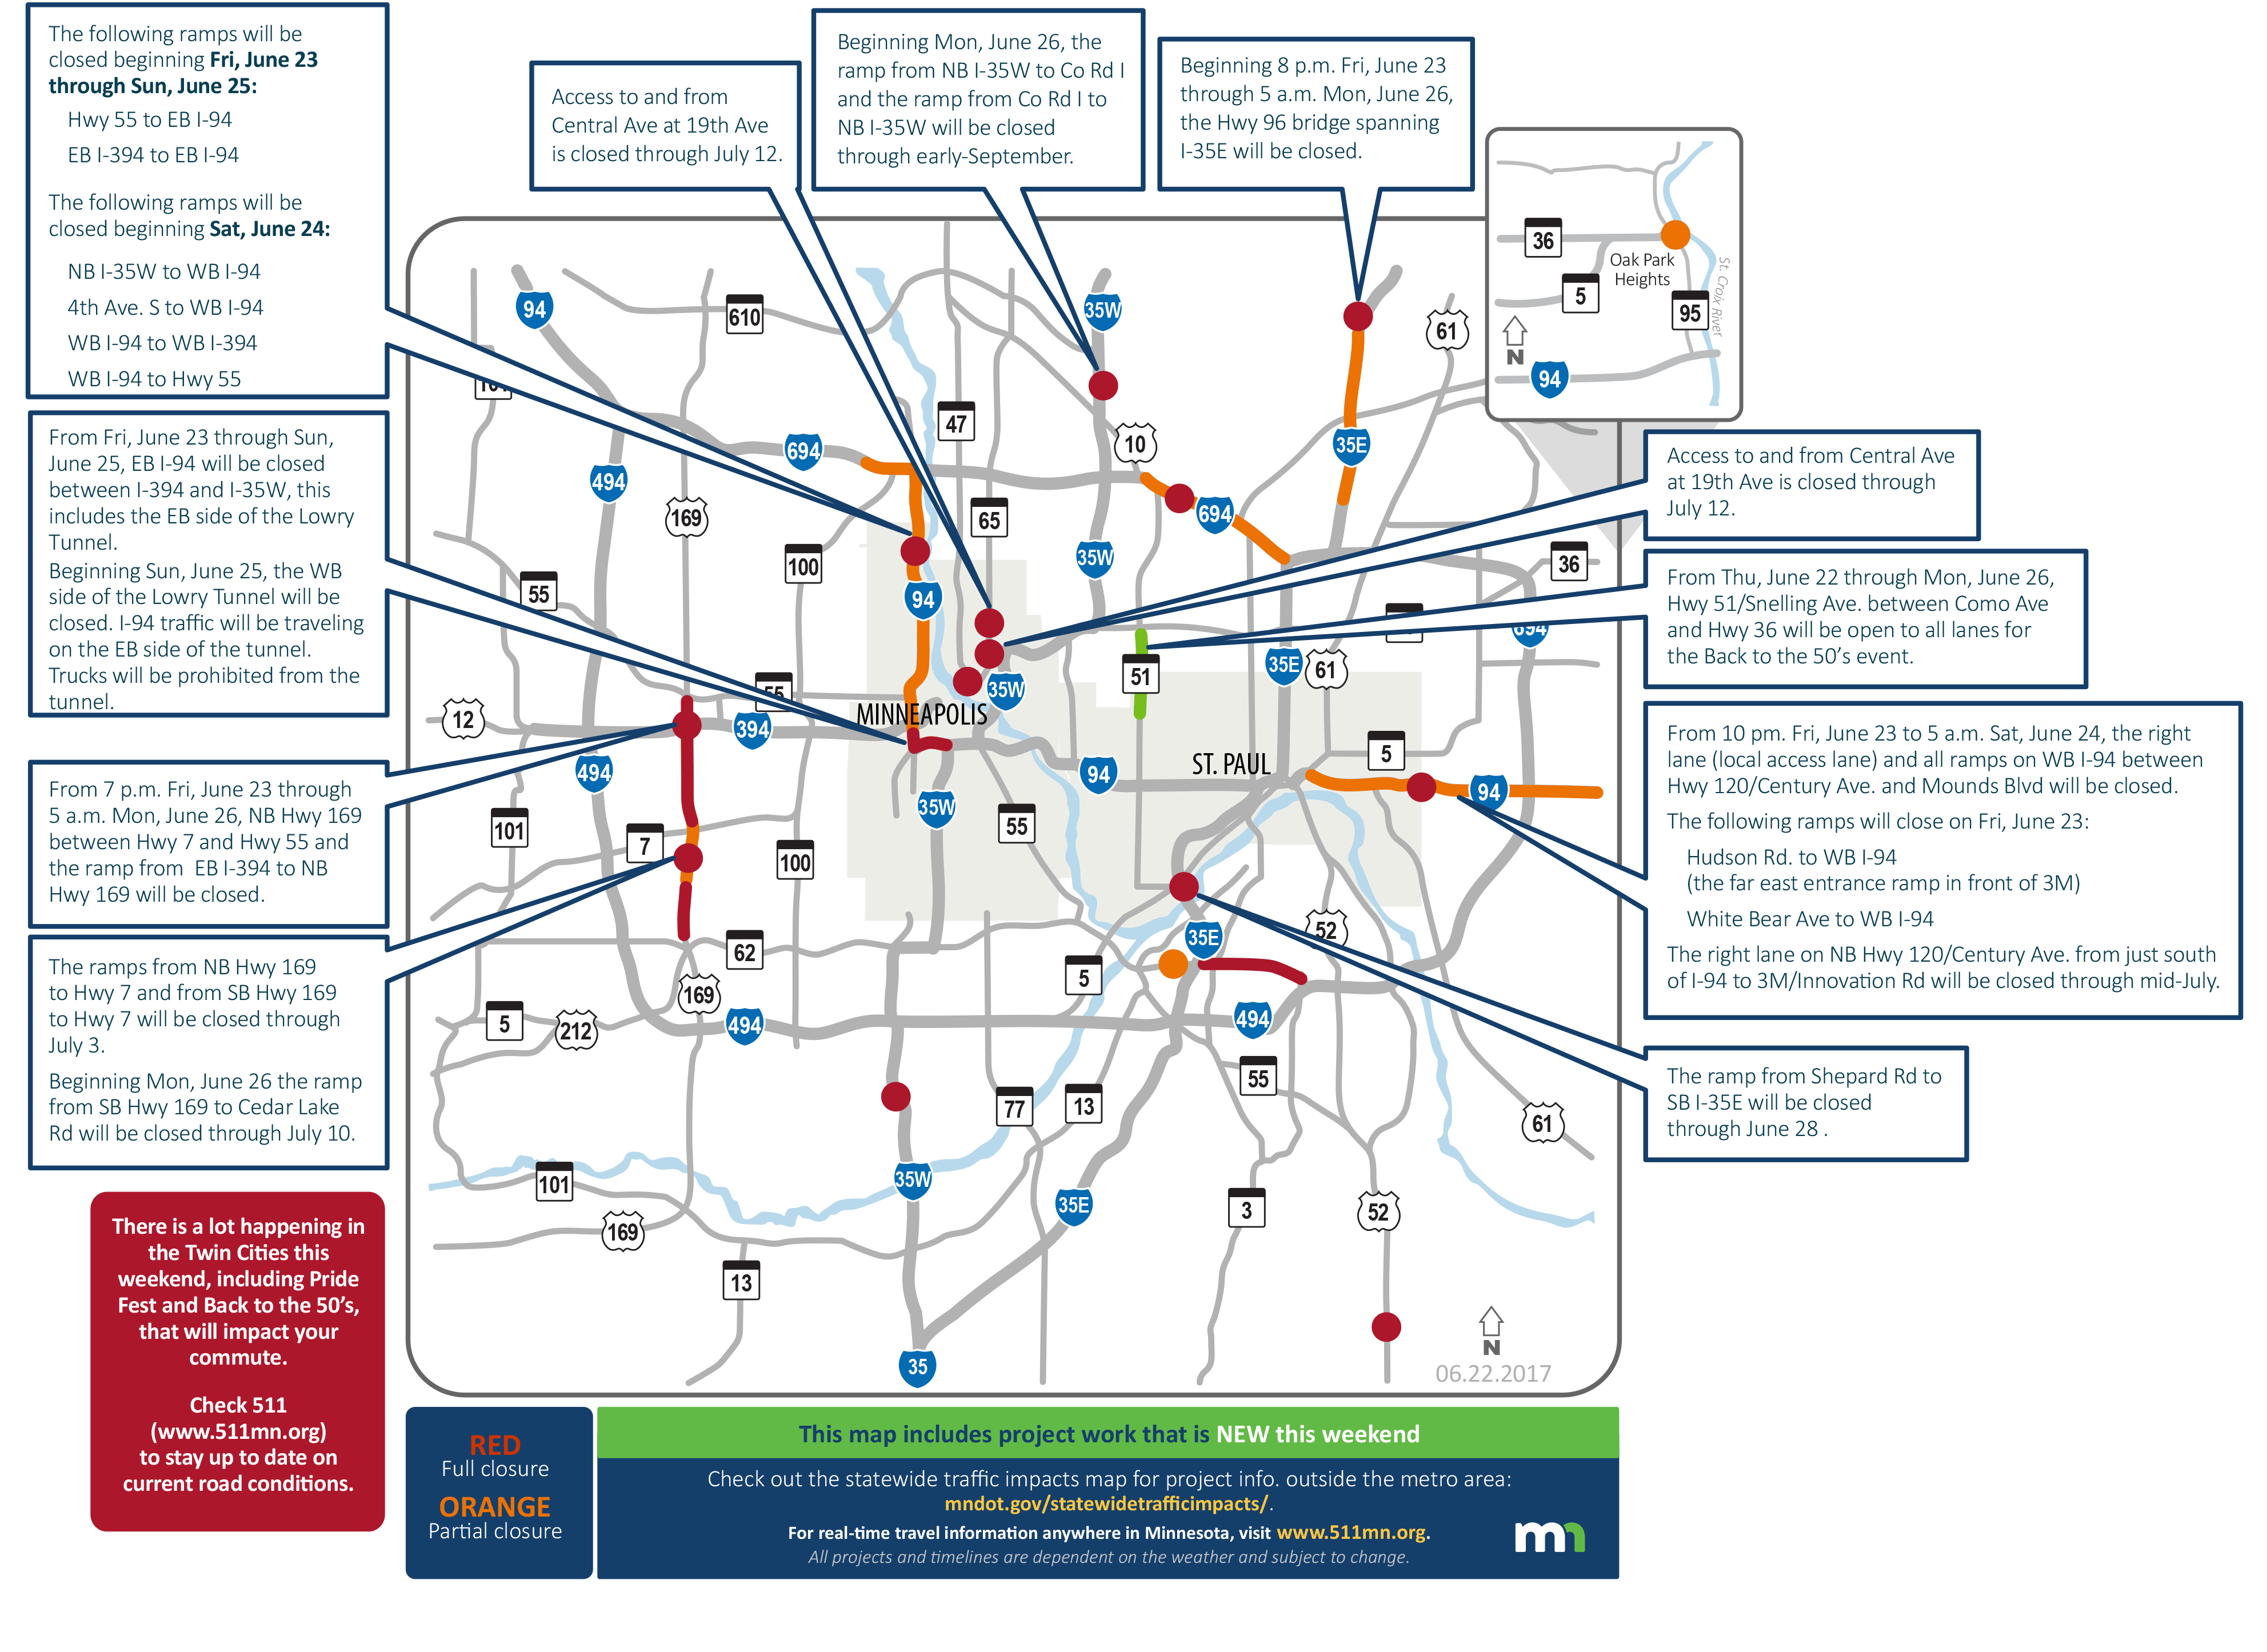 Uh, boy: Twin Cities weekend road hles will not be fun | MPR News Traffic Map Minneapolis on city traffic map, new orleans traffic map, manila traffic map, washington traffic map, dallas fort worth traffic map, hampton roads traffic map, minneapolis real-time traffic, hawaii traffic map, massachusetts traffic map, minneapolis roads, minneapolis events, las vegas traffic map, minneapolis library, minneapolis weather, texas traffic map, galveston traffic map, san francisco bay area traffic map, buffalo traffic map, orlando traffic map, mississippi traffic map,